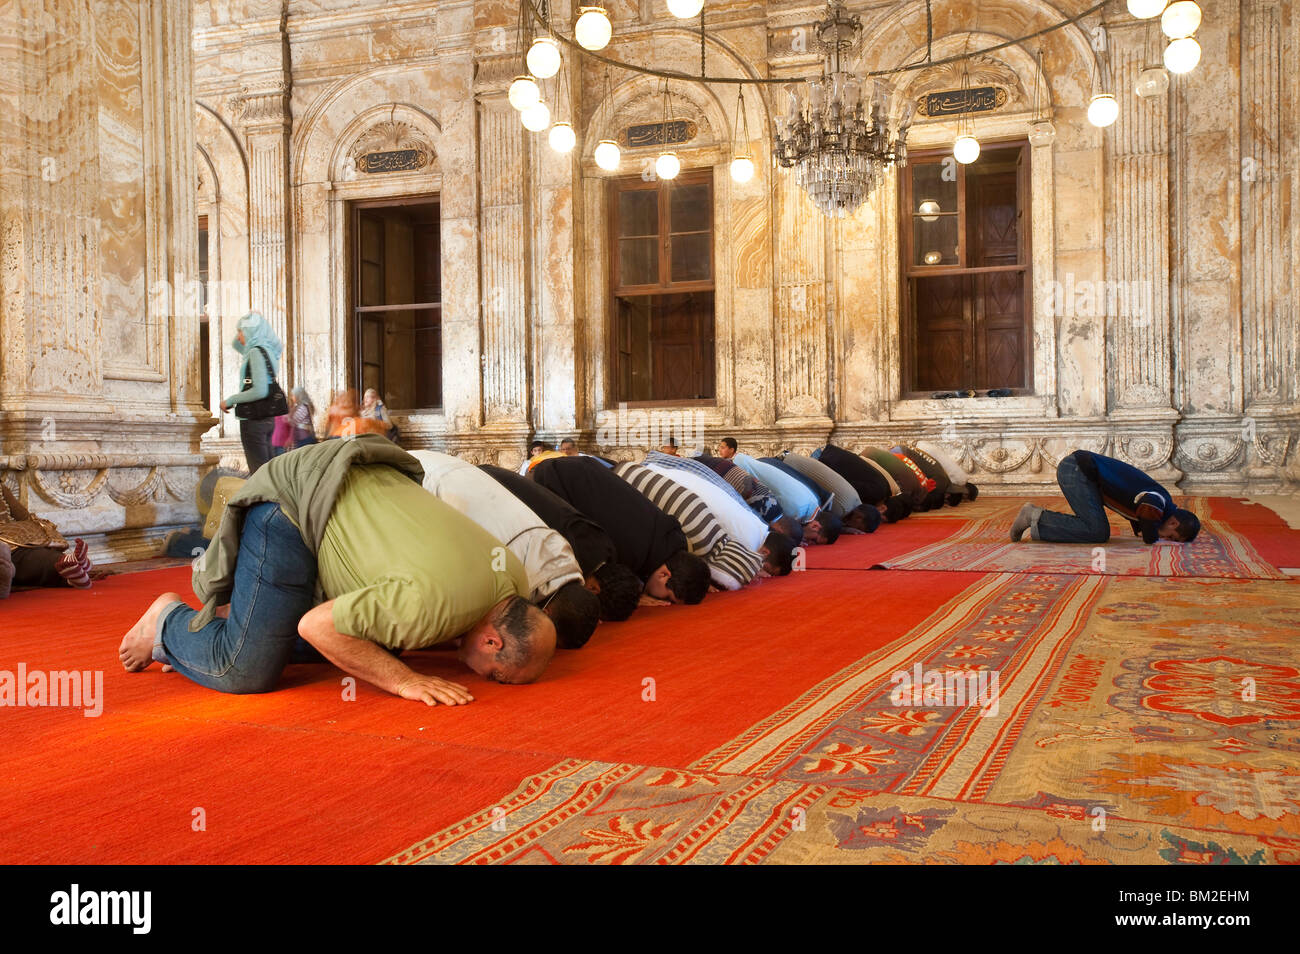 Mosque of Muhammad Ali Pasha (Alabaster Mosque), The Citadel, Cairo, Egypt - Stock Image